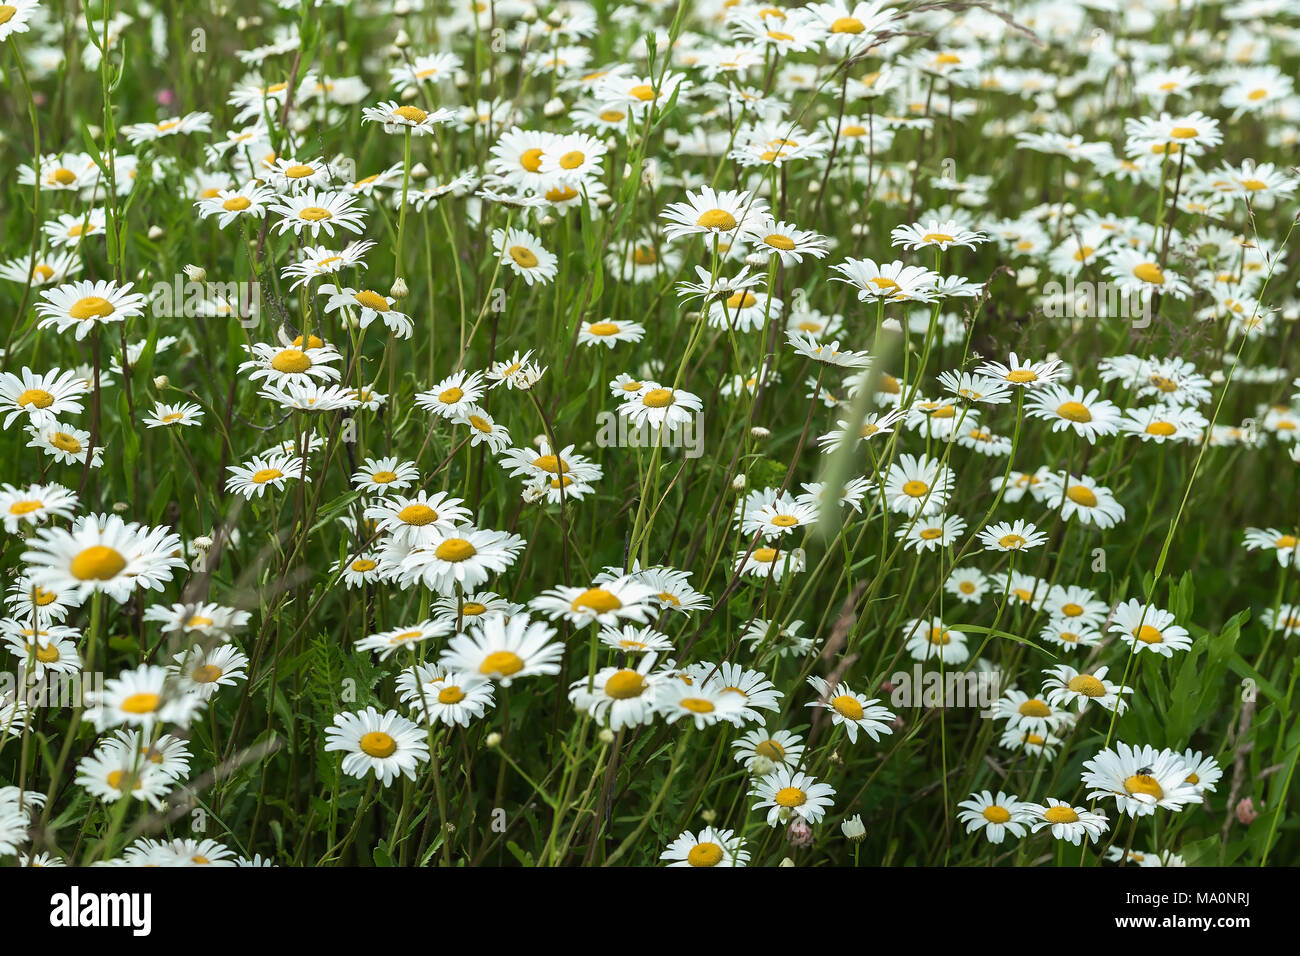 Beautiful White Daisies In The Wind Many Wild Meadow Of Daisy